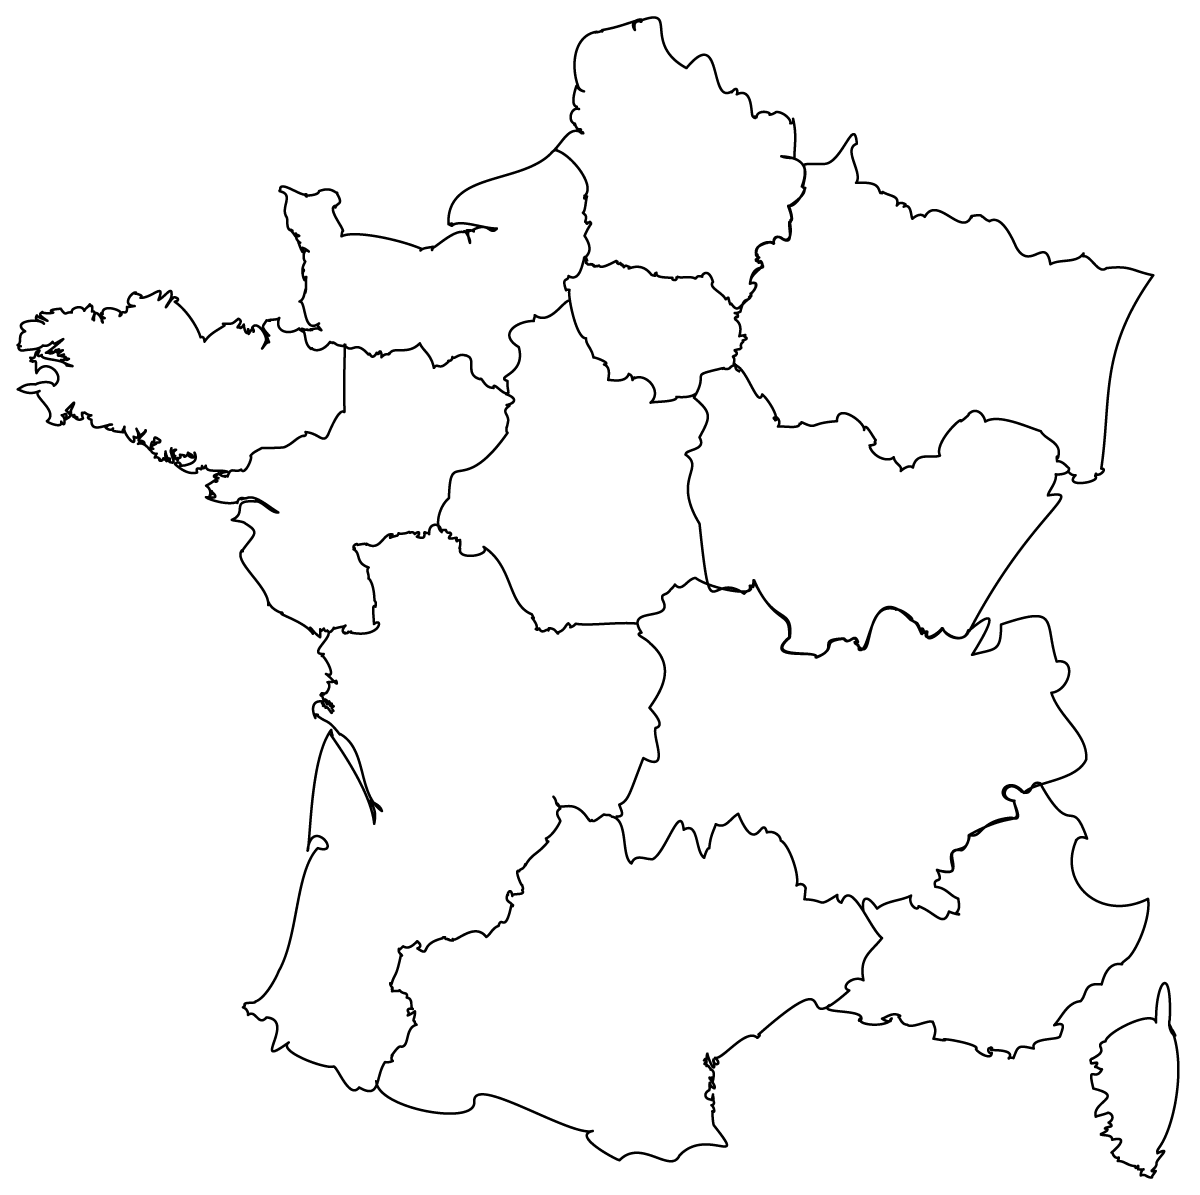 Regions De France Maps Of The Regions Of France